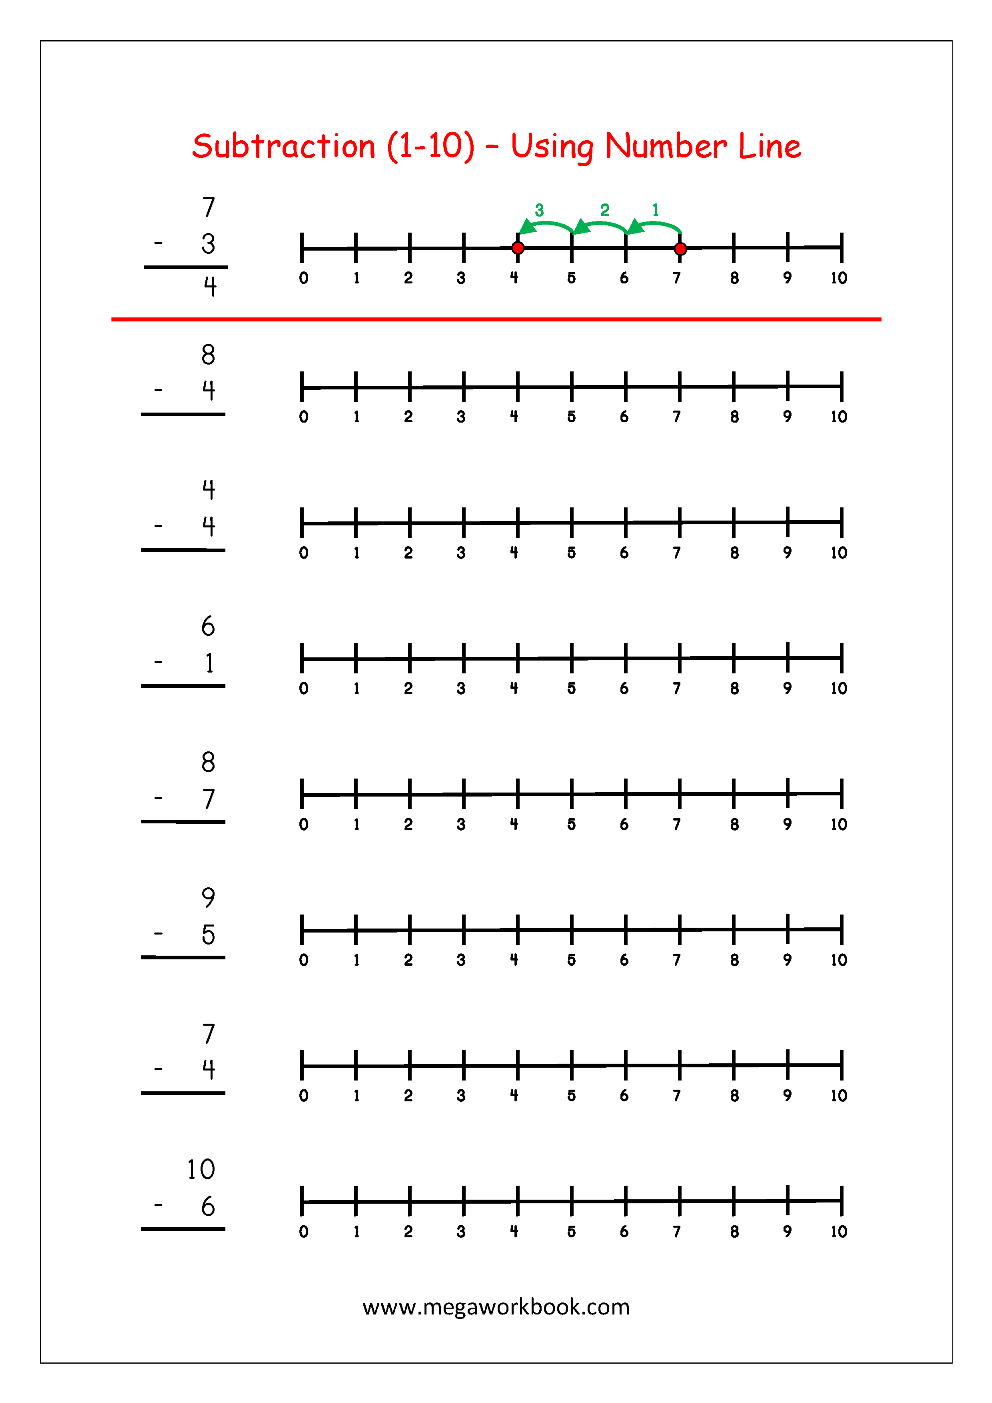 Mixed addition subtraction worksheets 1st grade 2659680 - aks-flight ...